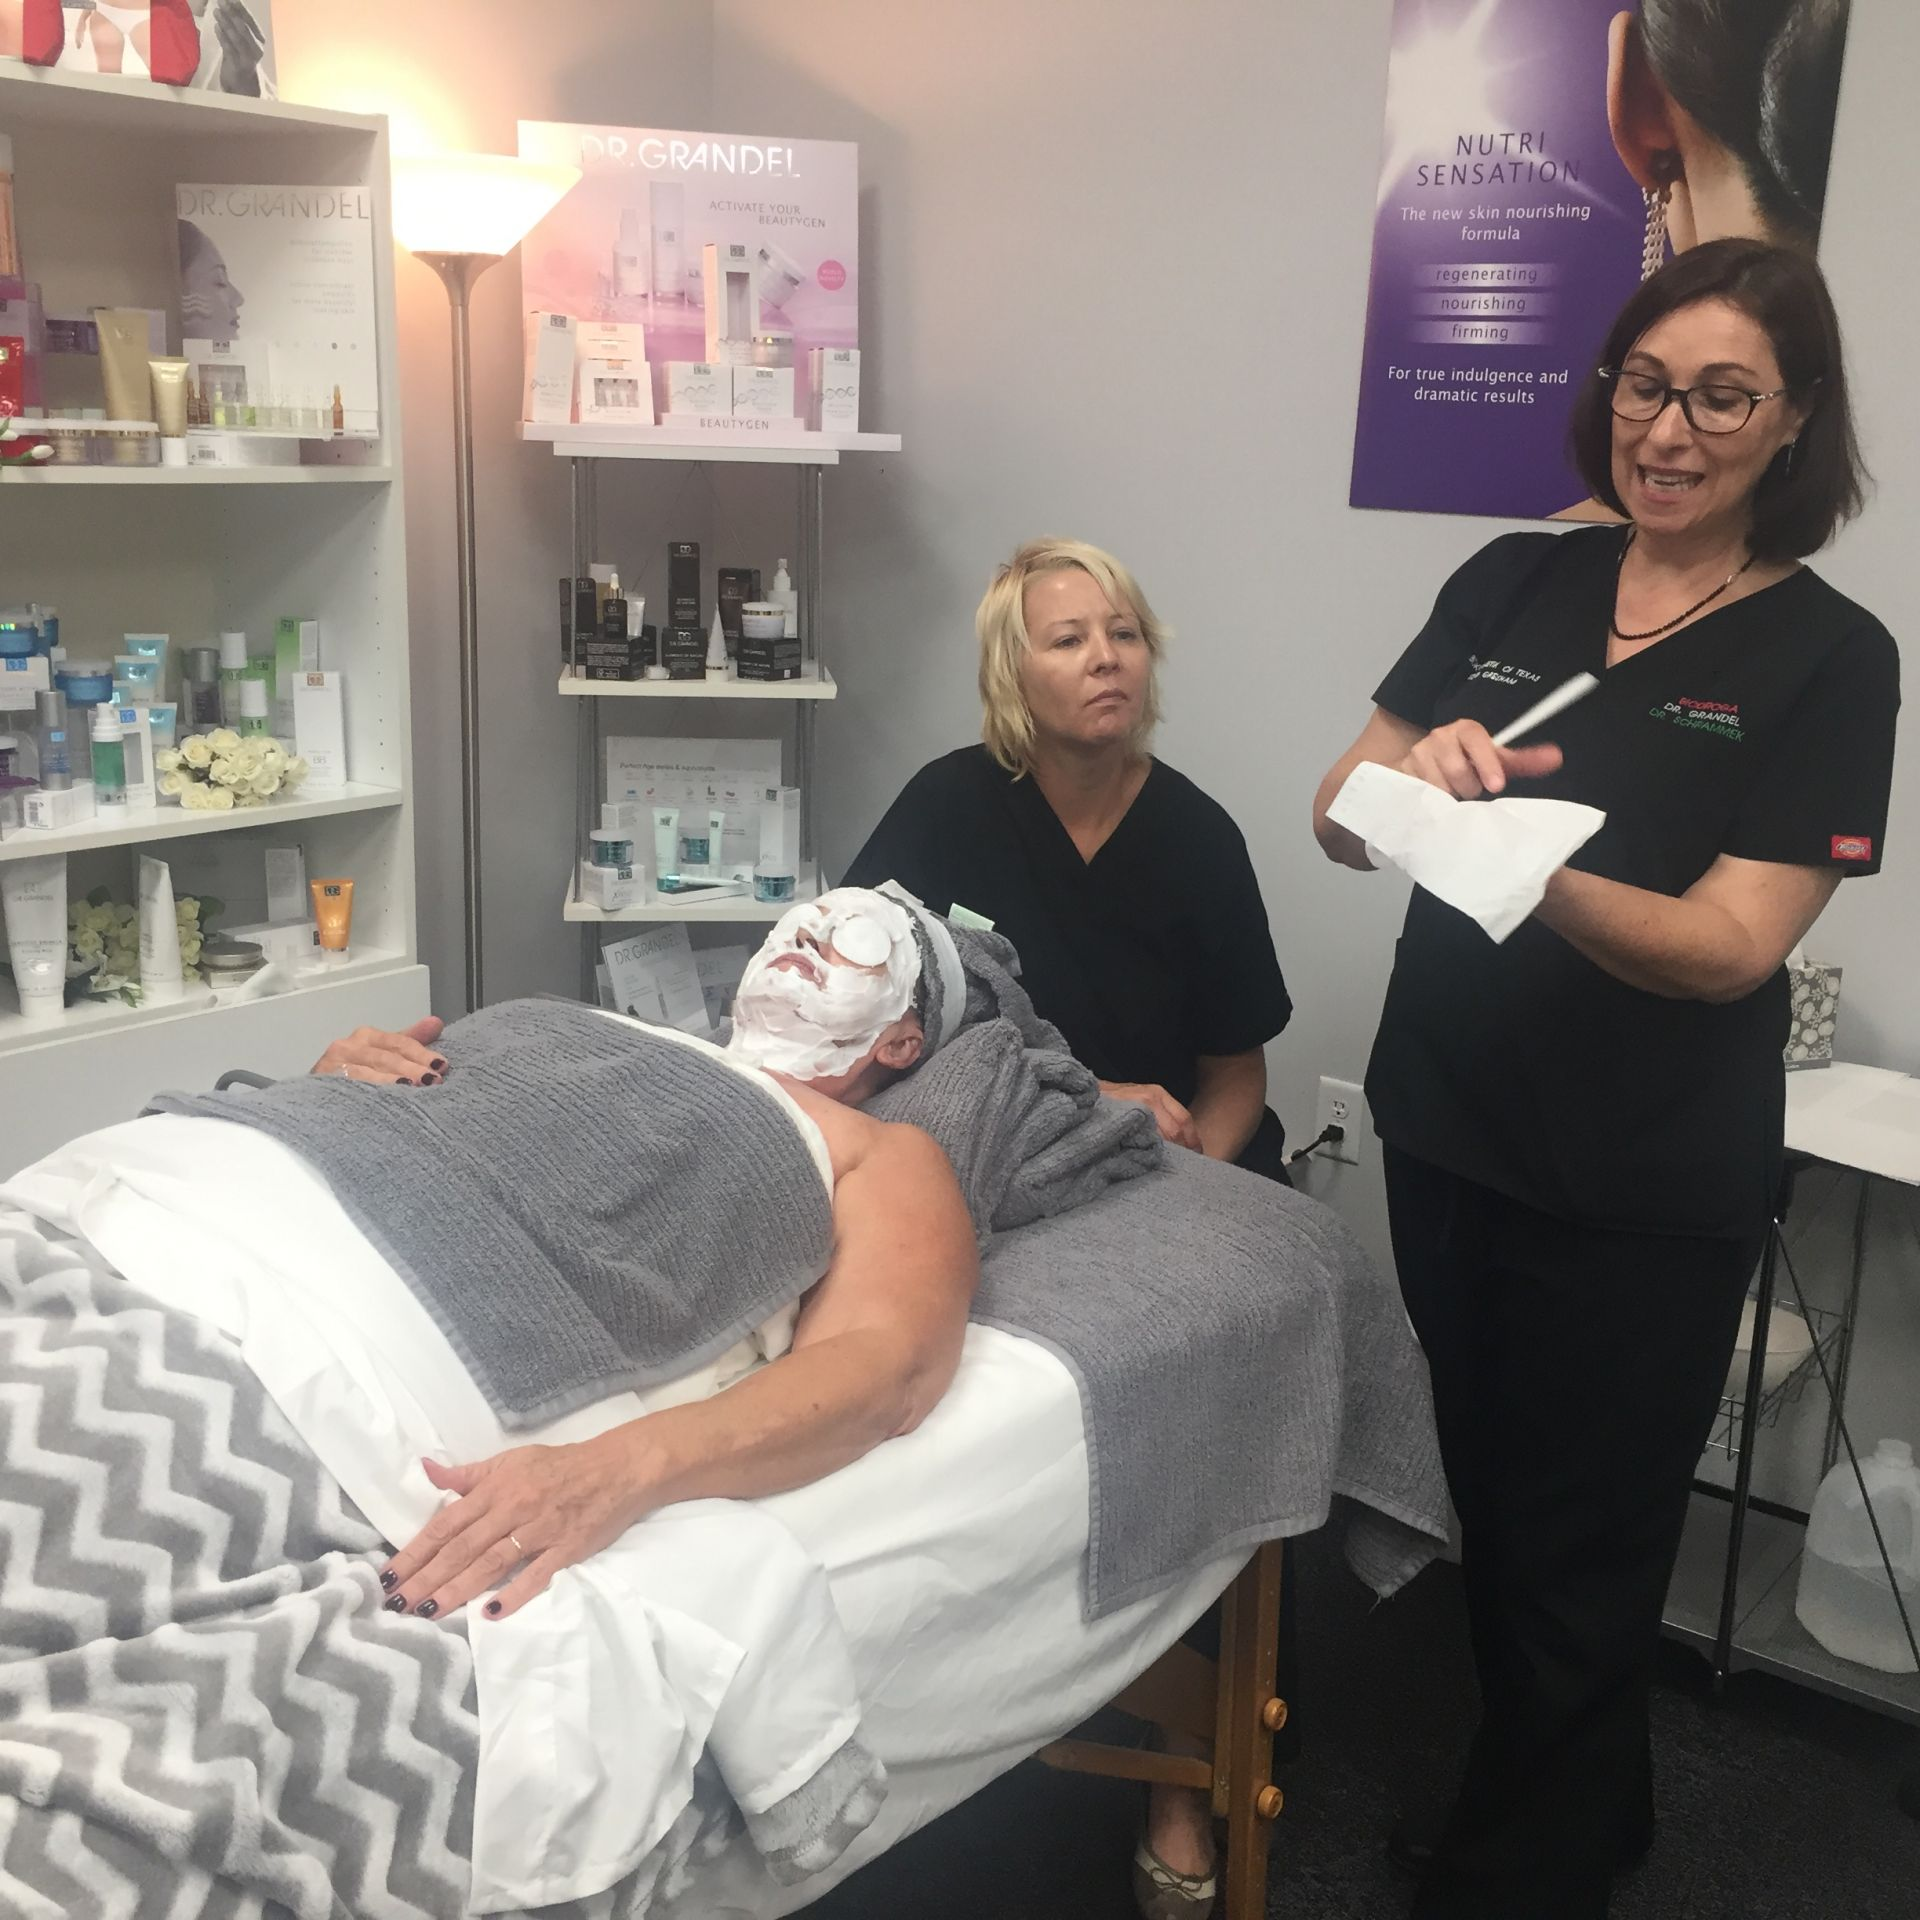 masks, ampoules special treatments for estheticians